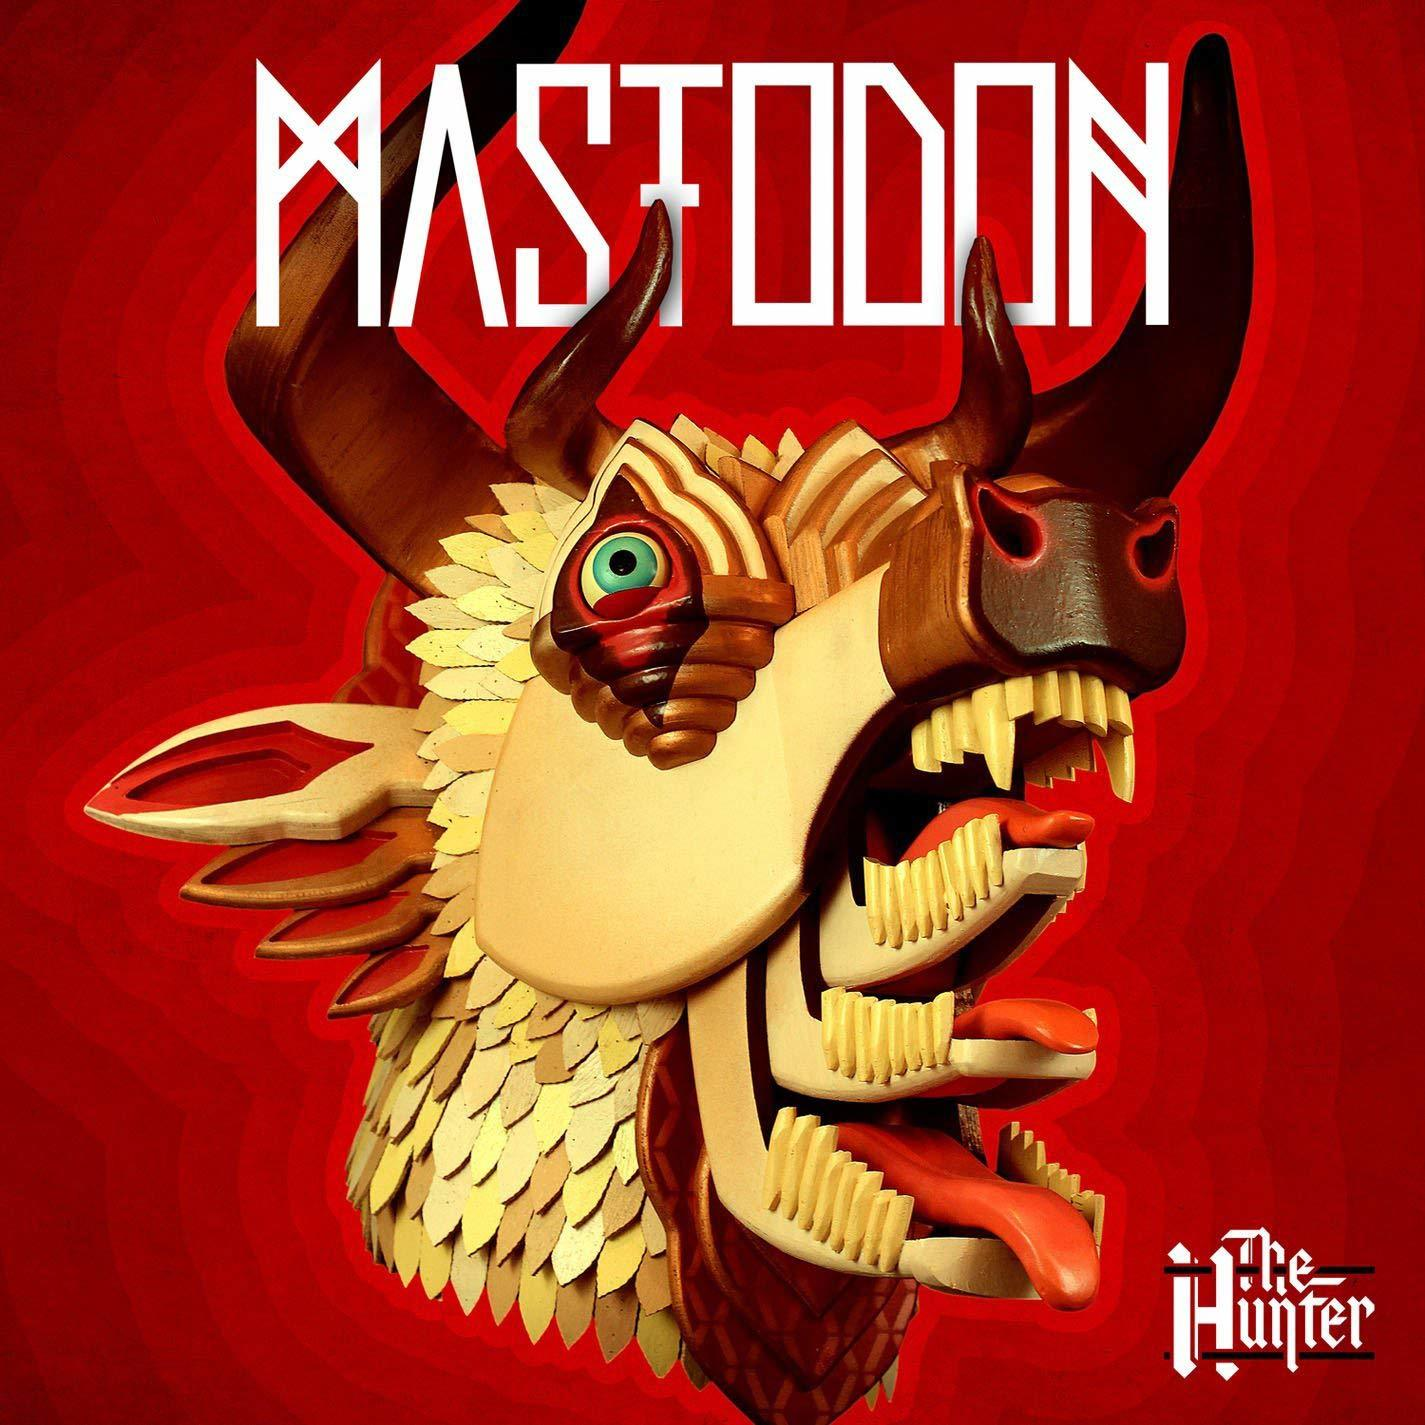 MASTODON The Hunter CD.jpg